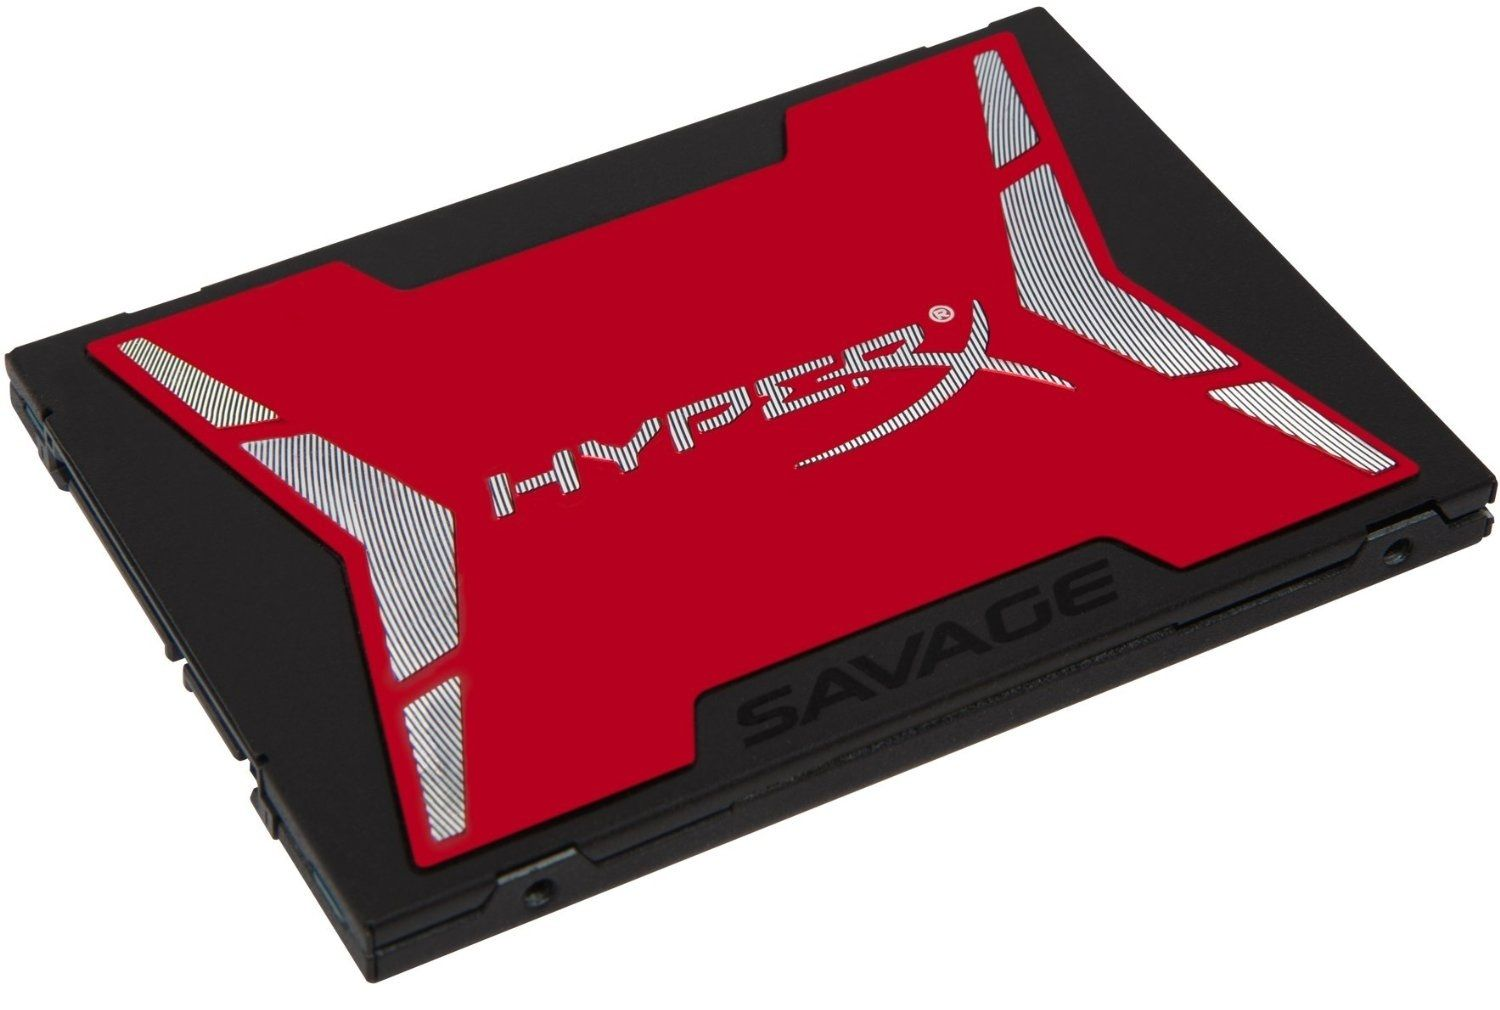 Kingston HyperX Savage 480GB